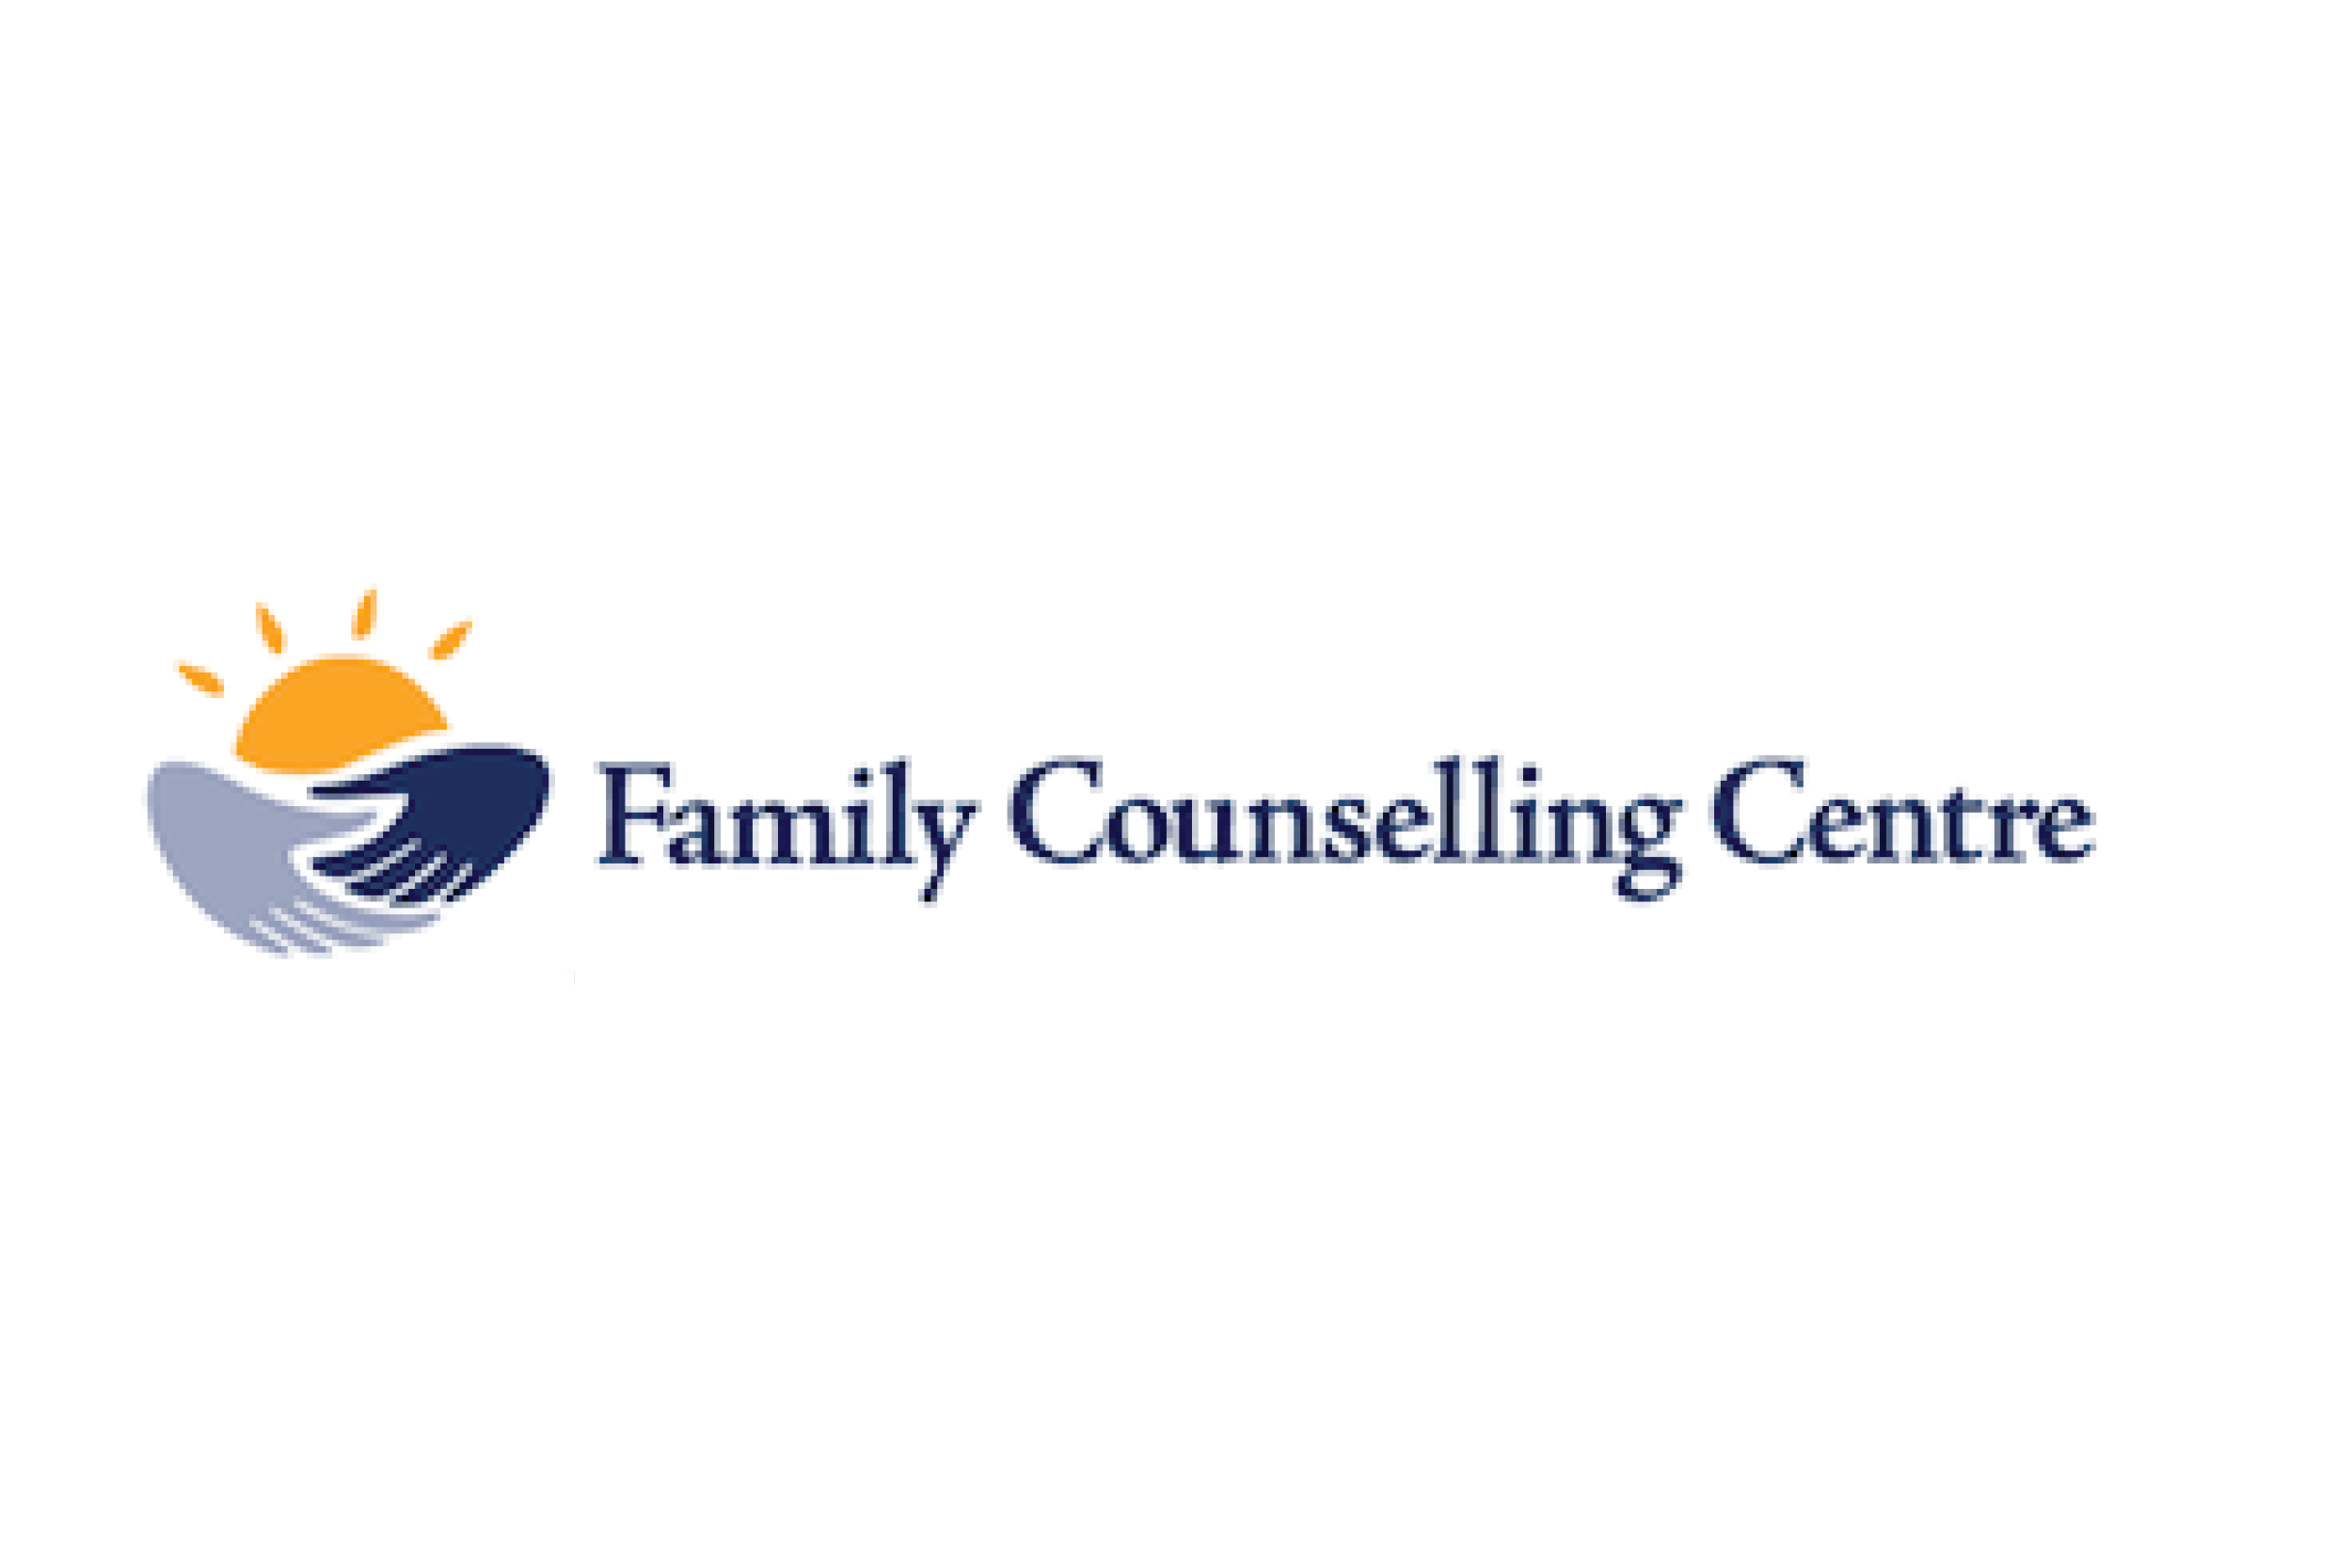 Family Counselling Centre Logo